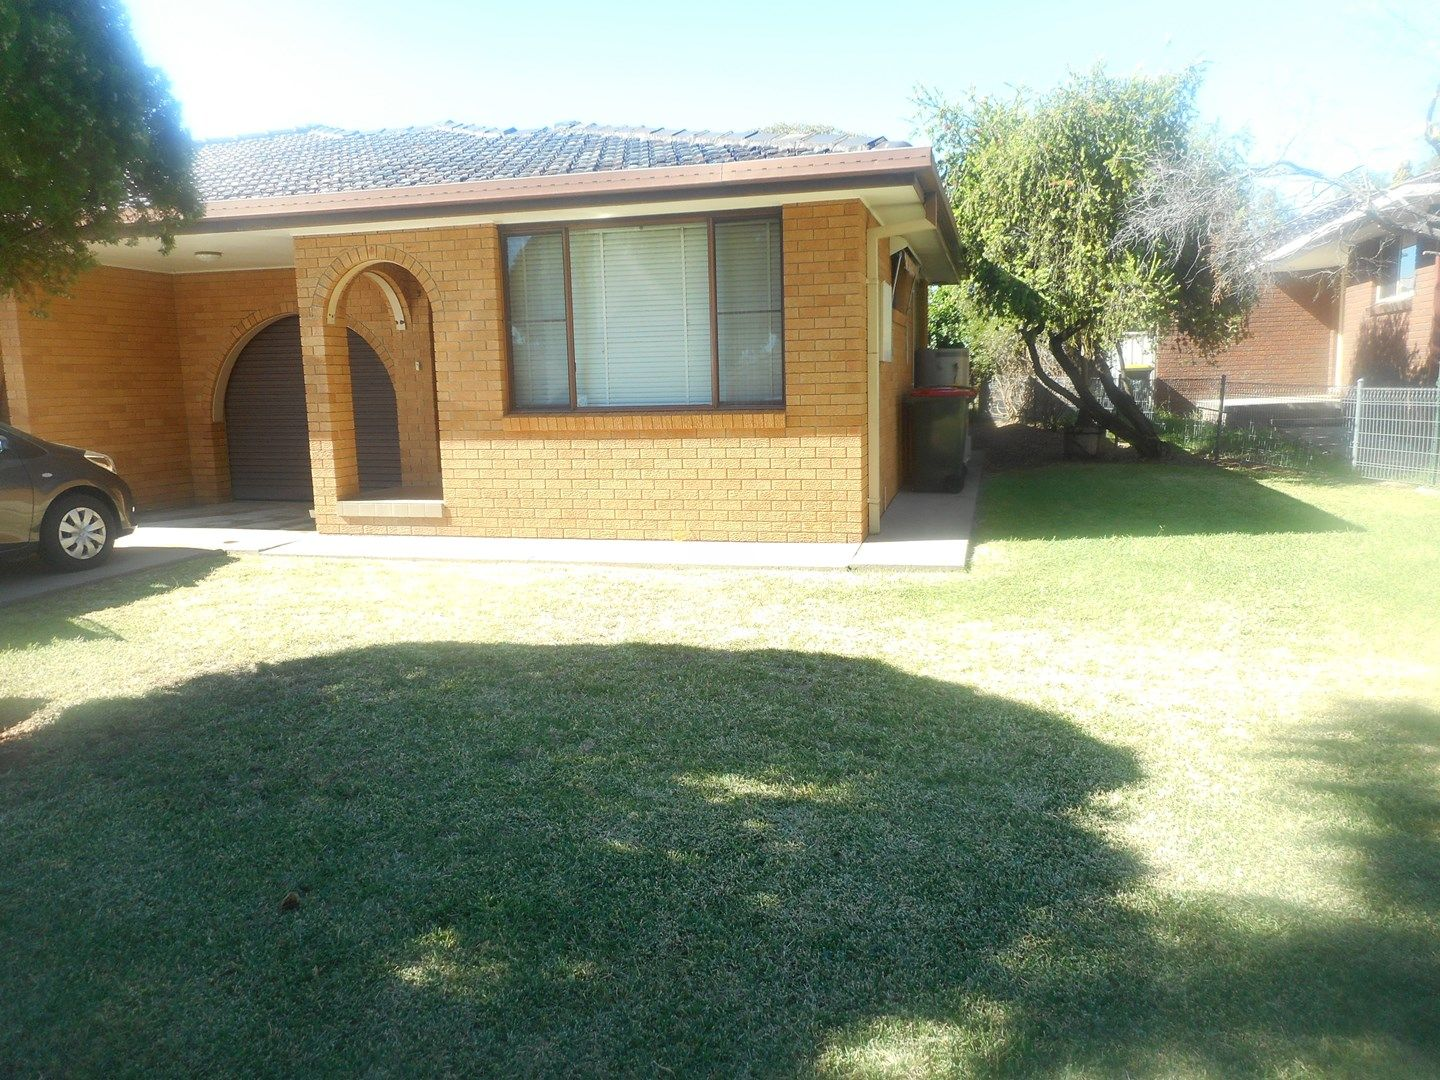 2/43 Susanne St, Tamworth NSW 2340, Image 0